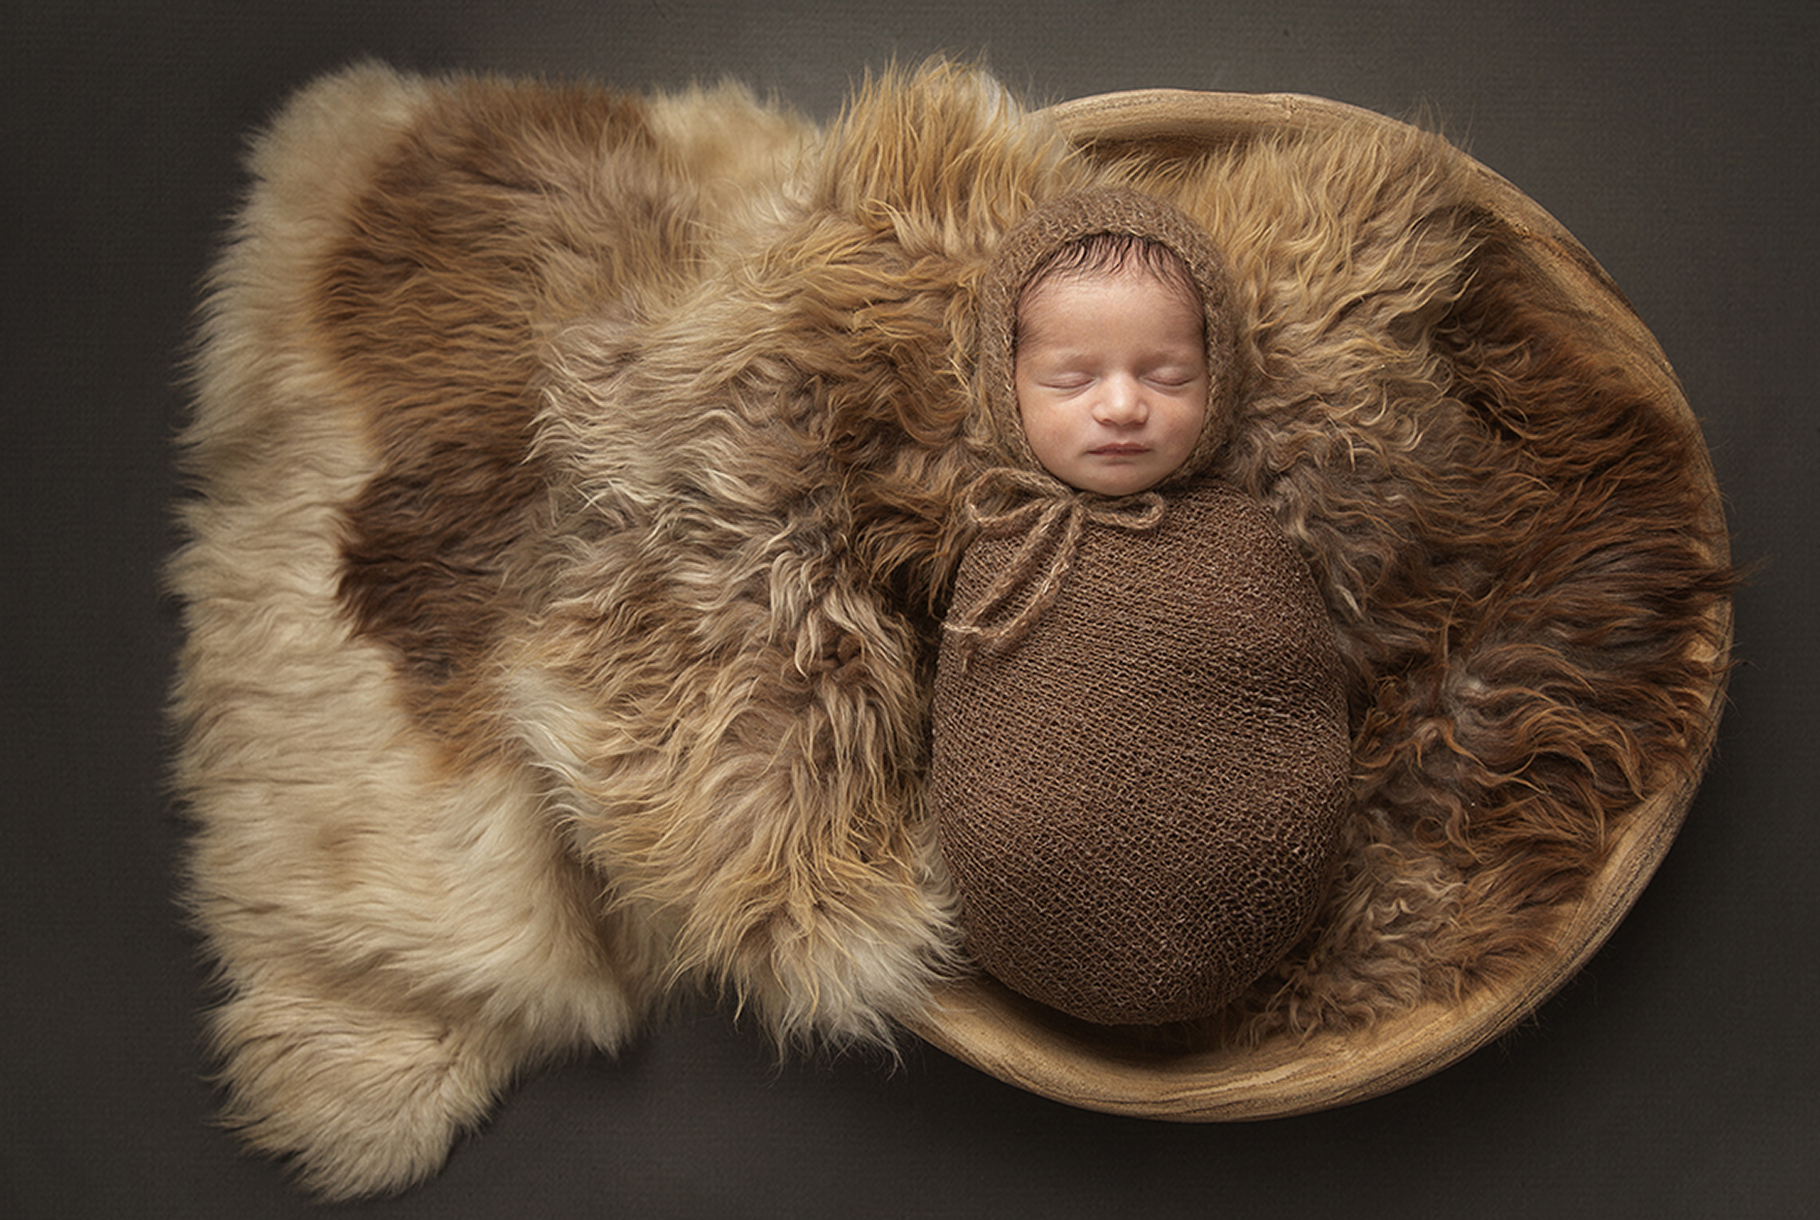 baby wrapped in bowl on brown rug by newborn photographer Dumfries